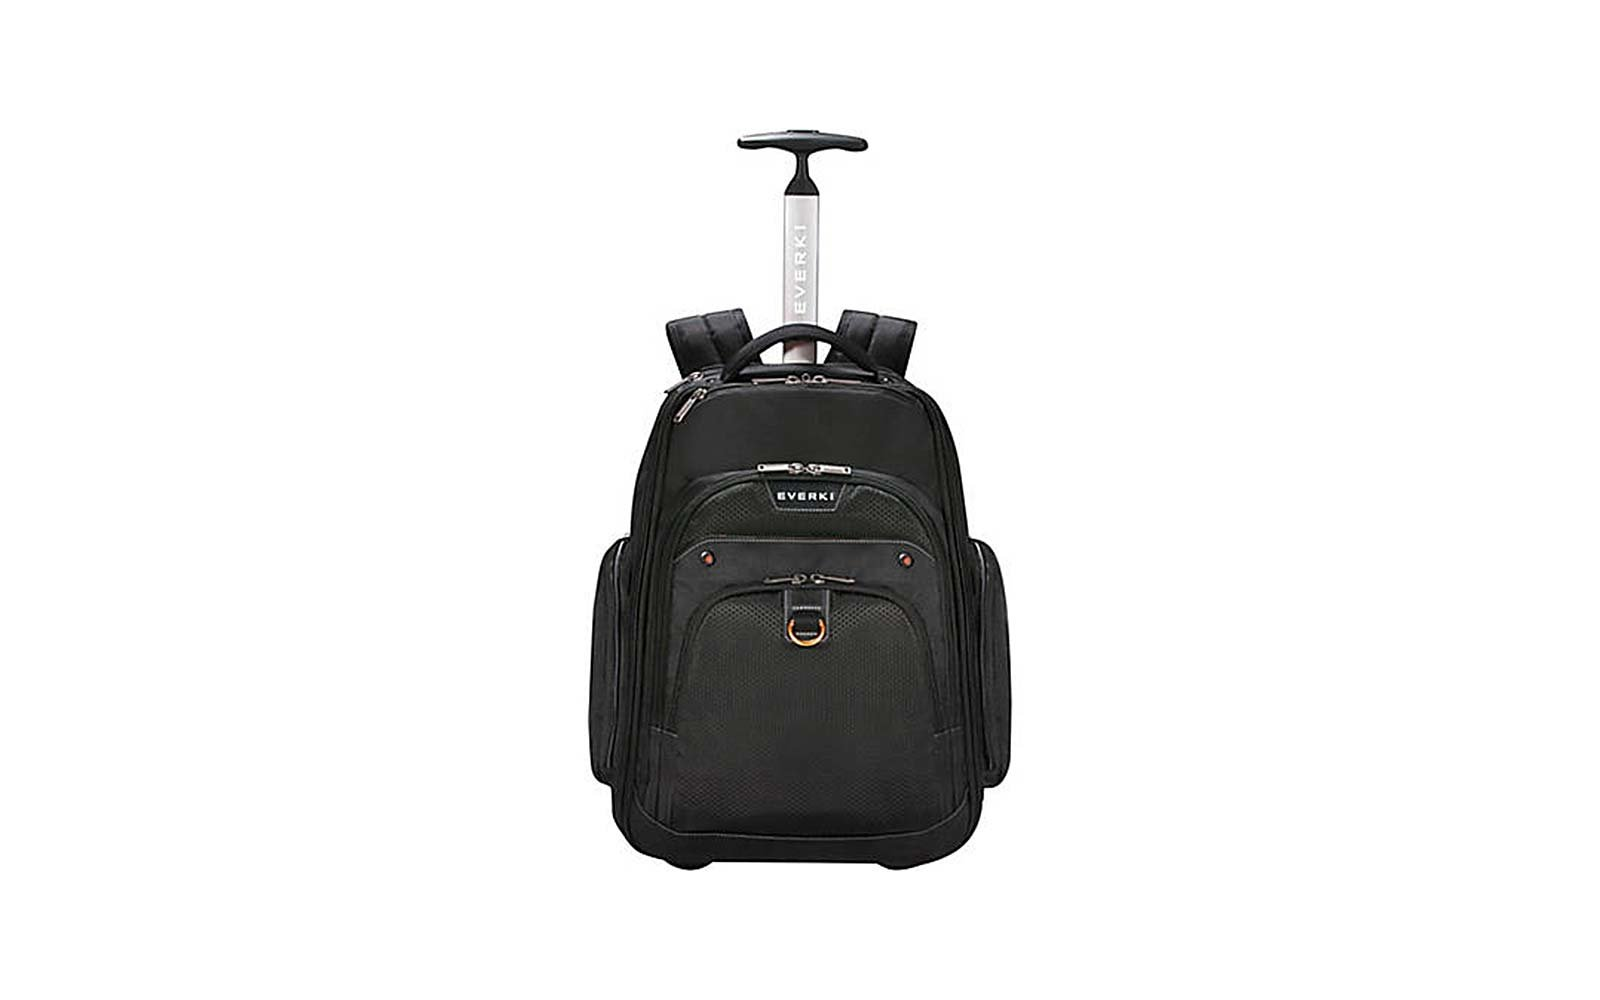 Laptop stylish bag on wheels forecast to wear for winter in 2019